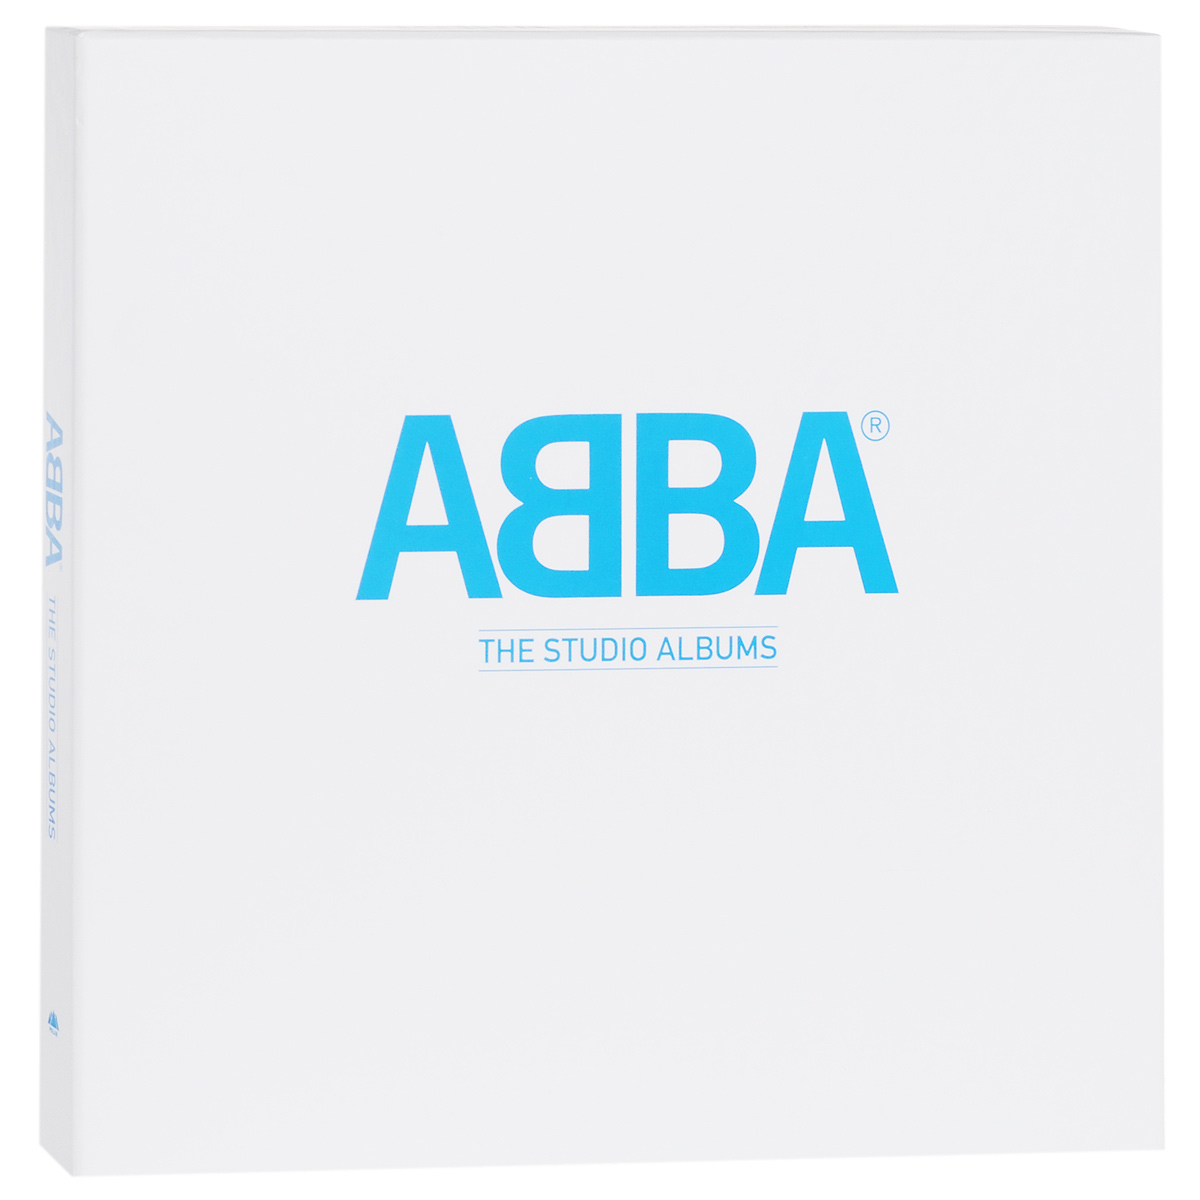 ABBA ABBA. The Studio Albums (8 LP) бетт мидлер bette midler it s the girls 2 lp